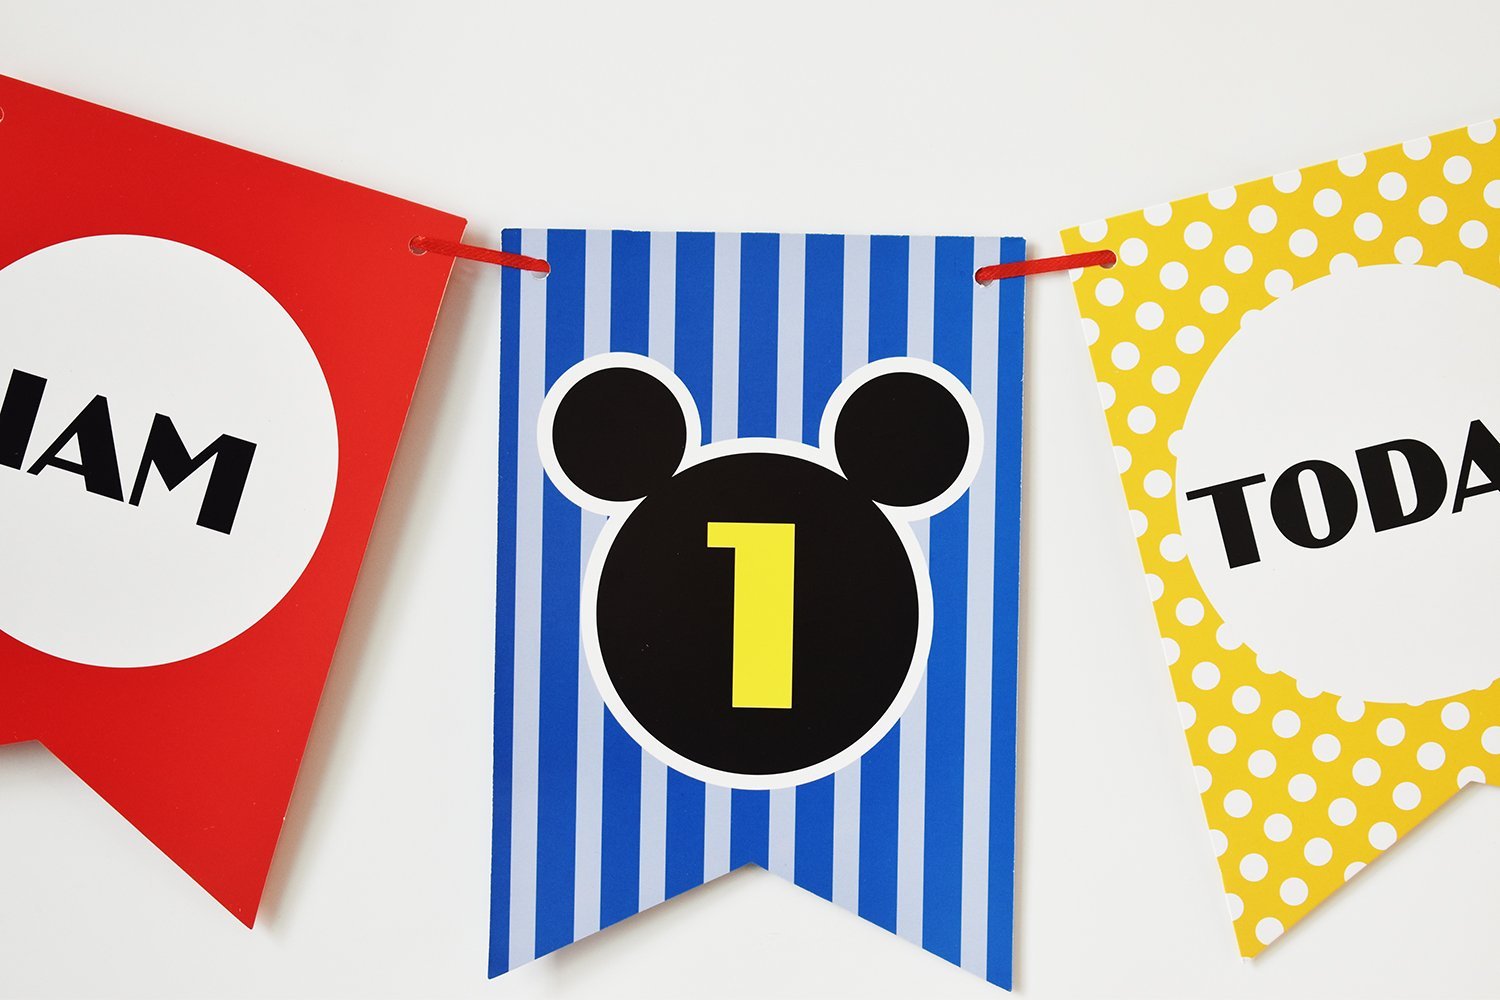 Brcohco Im 1 Today Cute High Chair Banner 1st Birthday for Baby First Birthday Party Decoration Supplies(Red,Blue,Yellow